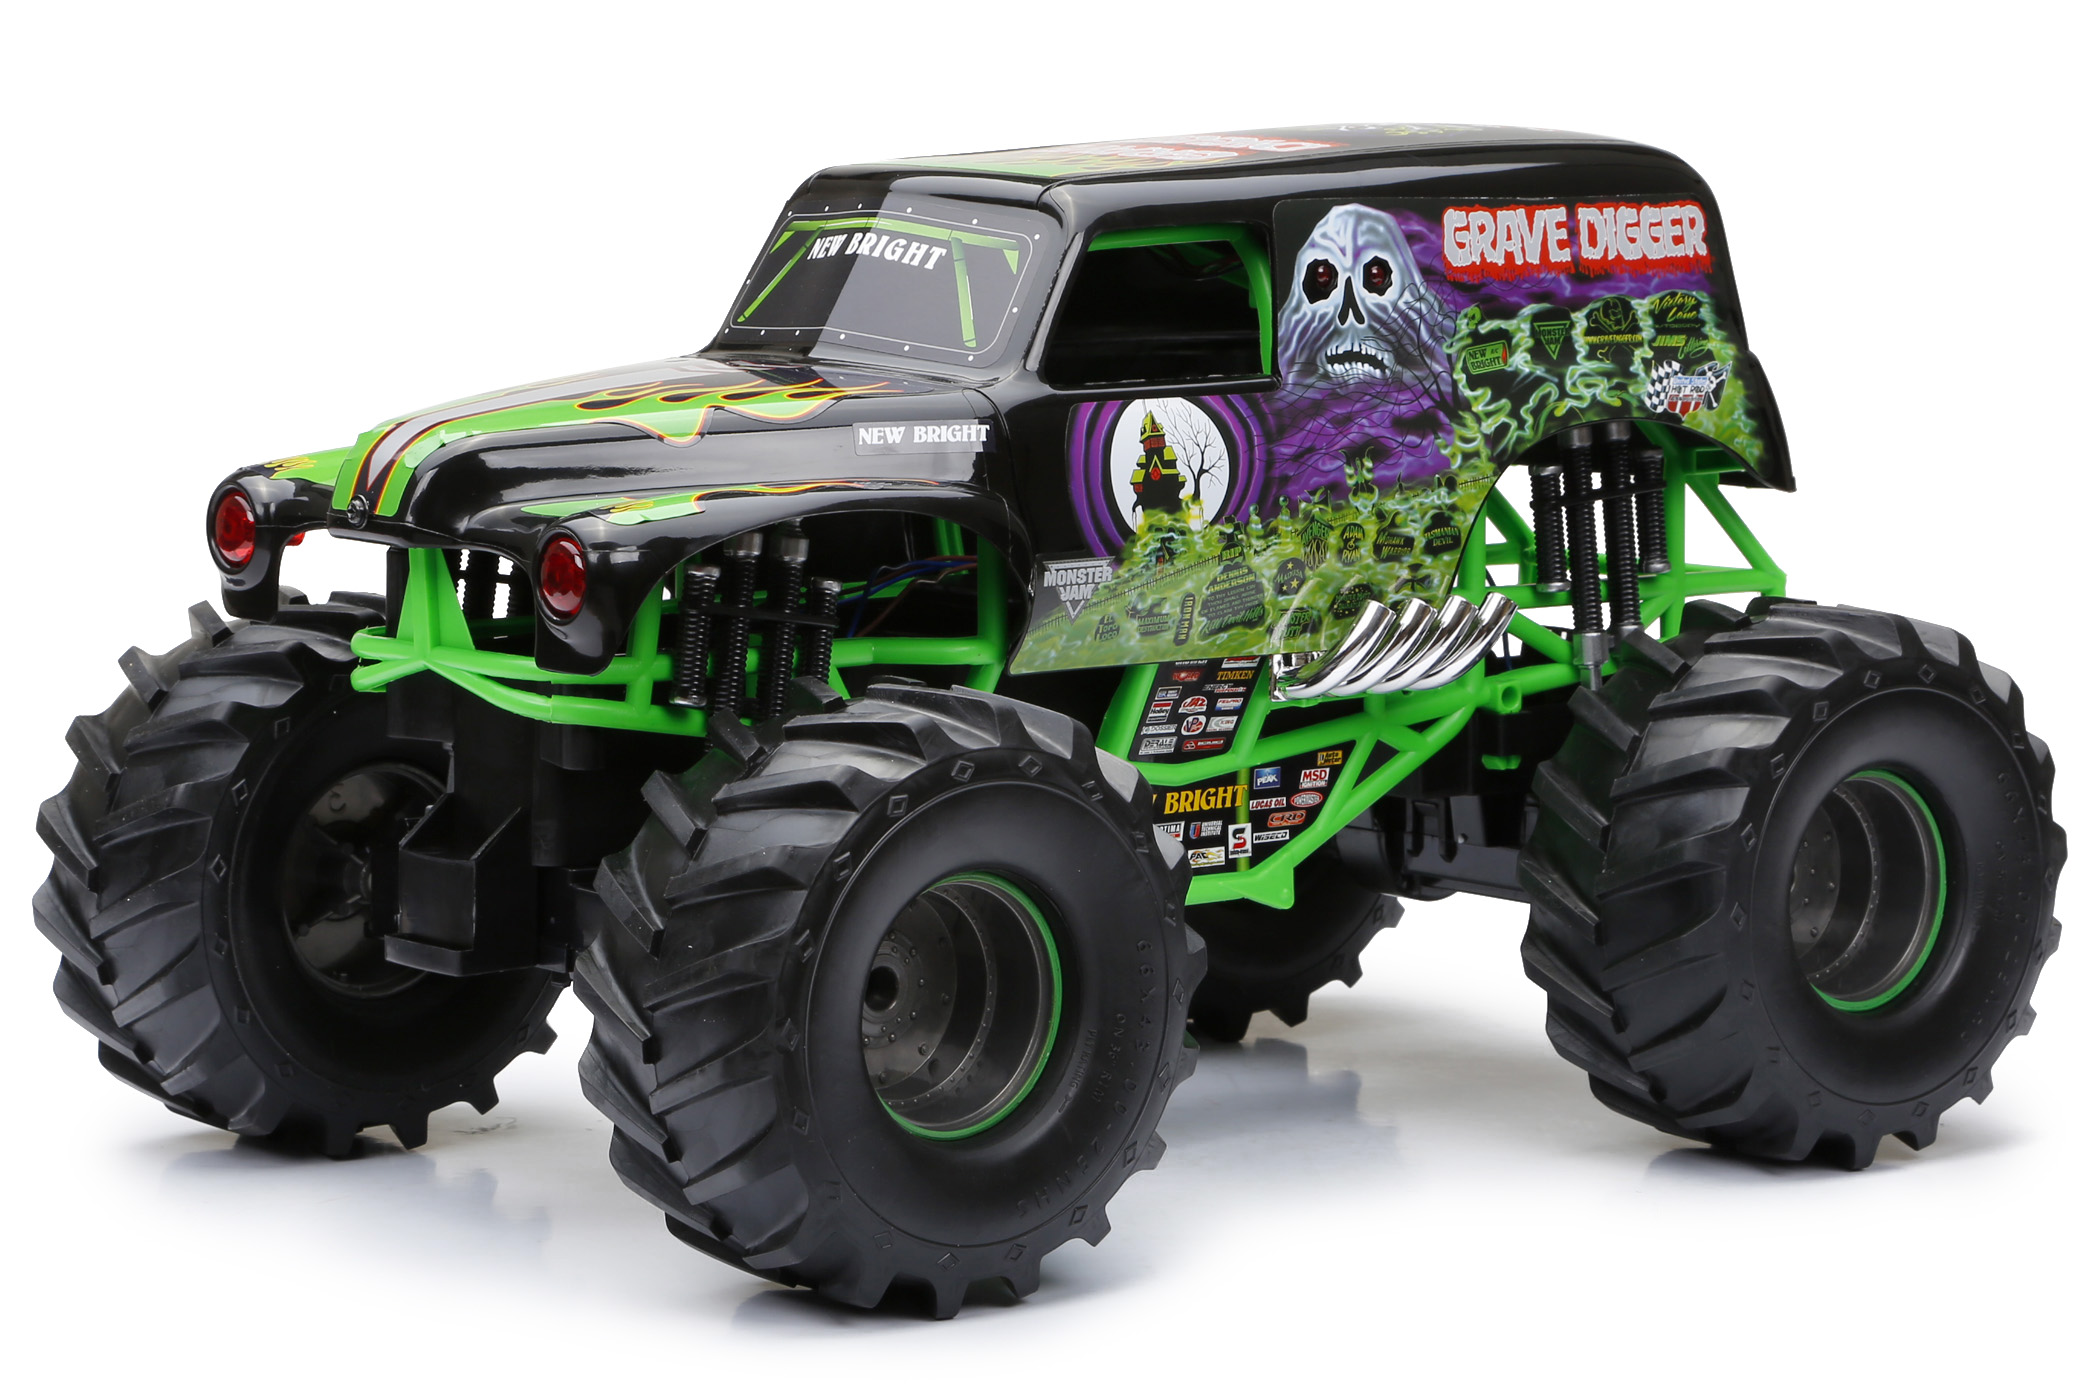 New Bright 1:10 Radio Control Full Function 9.6V Monster Jam by New Bright Industrial Co., Ltd.